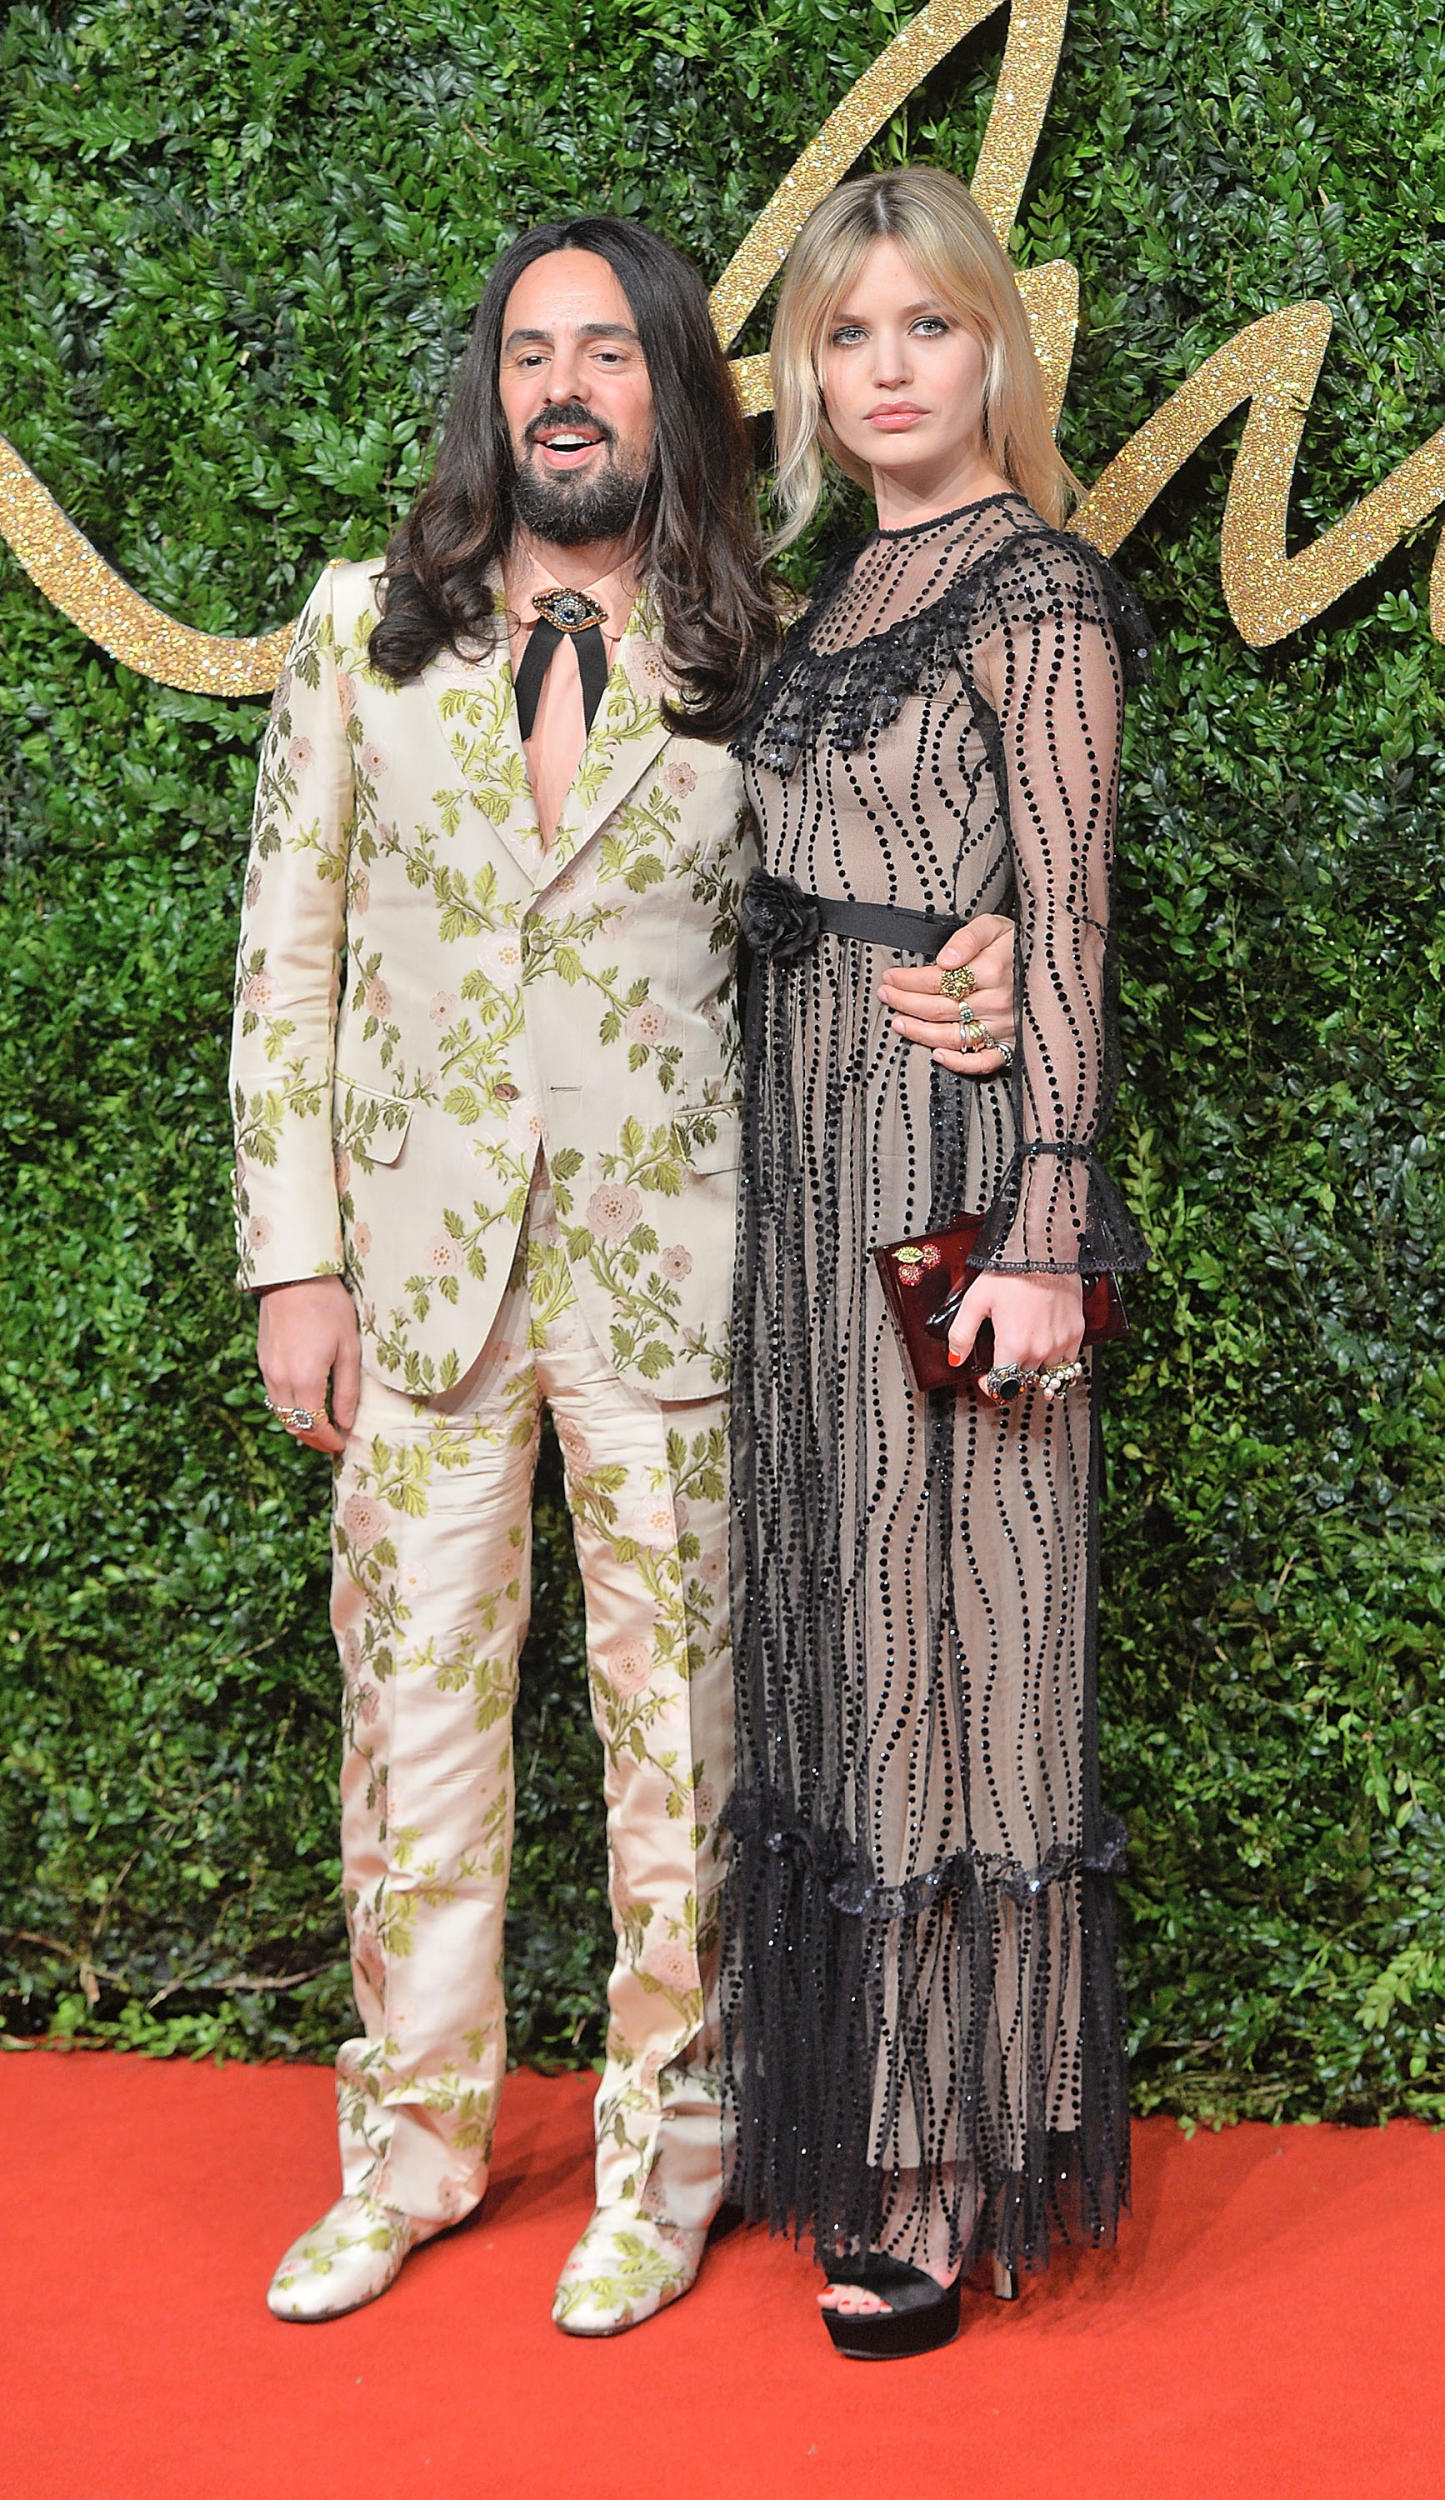 Alessandro Michele and Georgia May Jagger